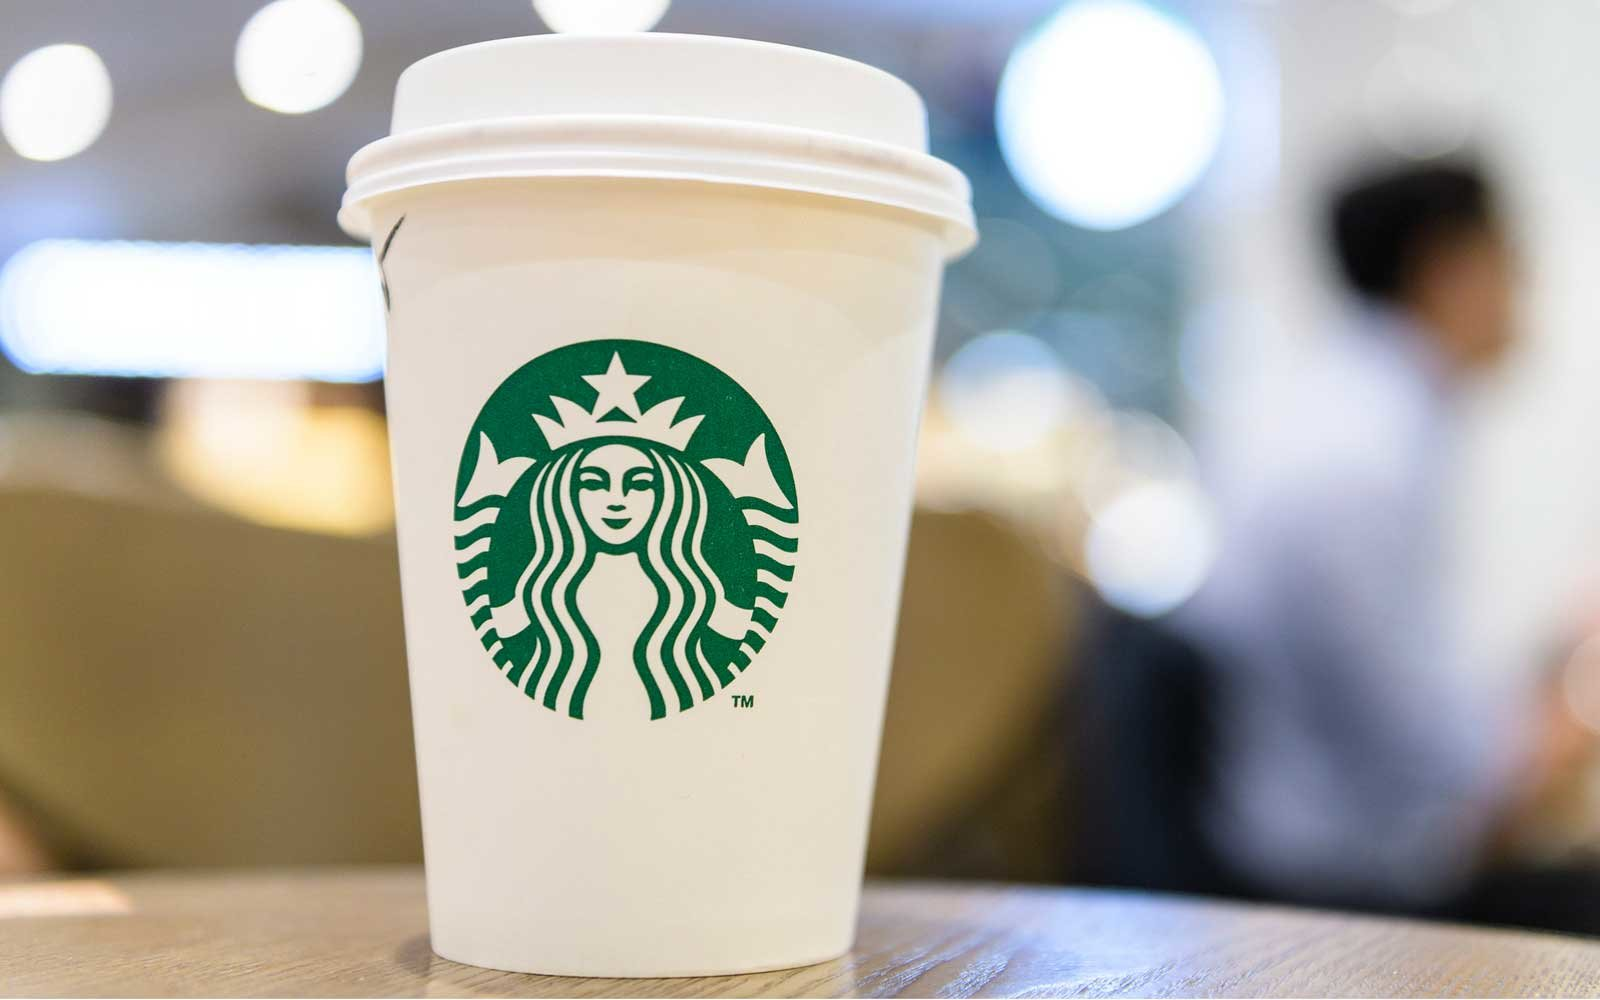 This Starbucks In Mexico City Will Be Run Entirely By